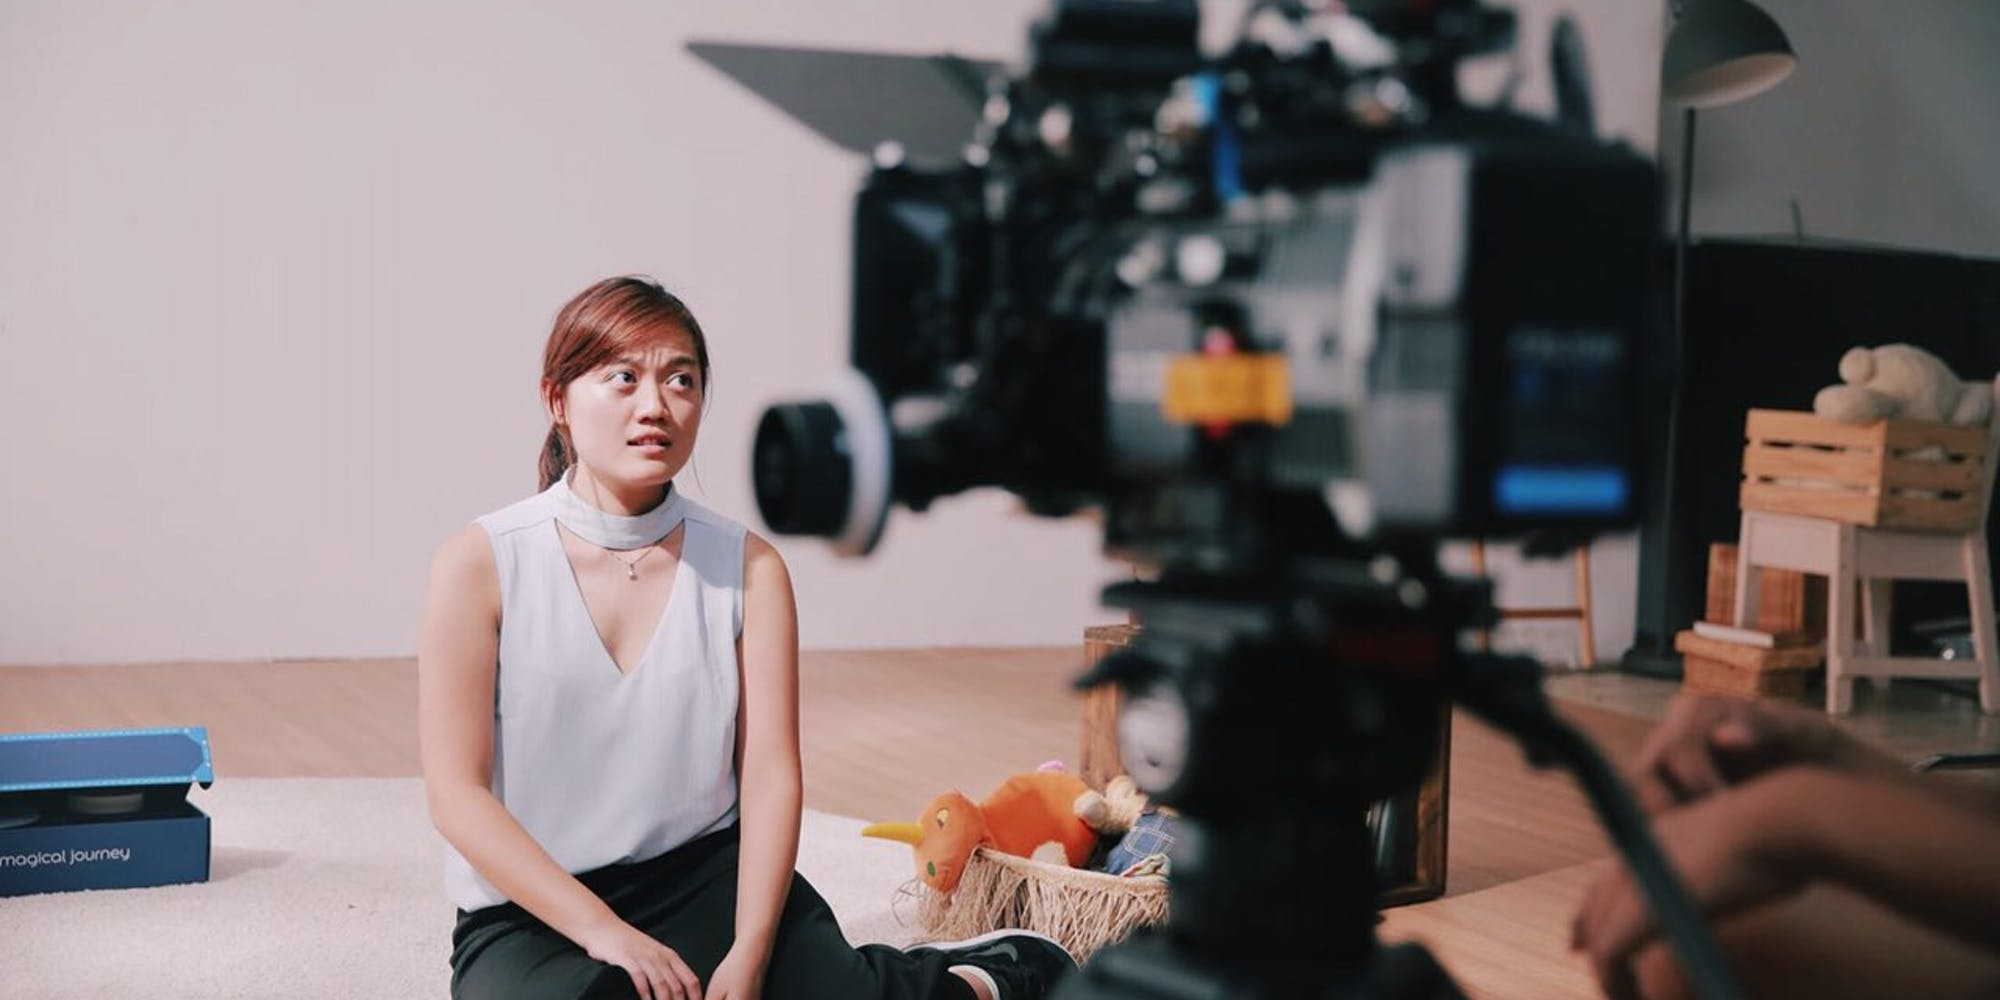 Behind the scene of a production shoot